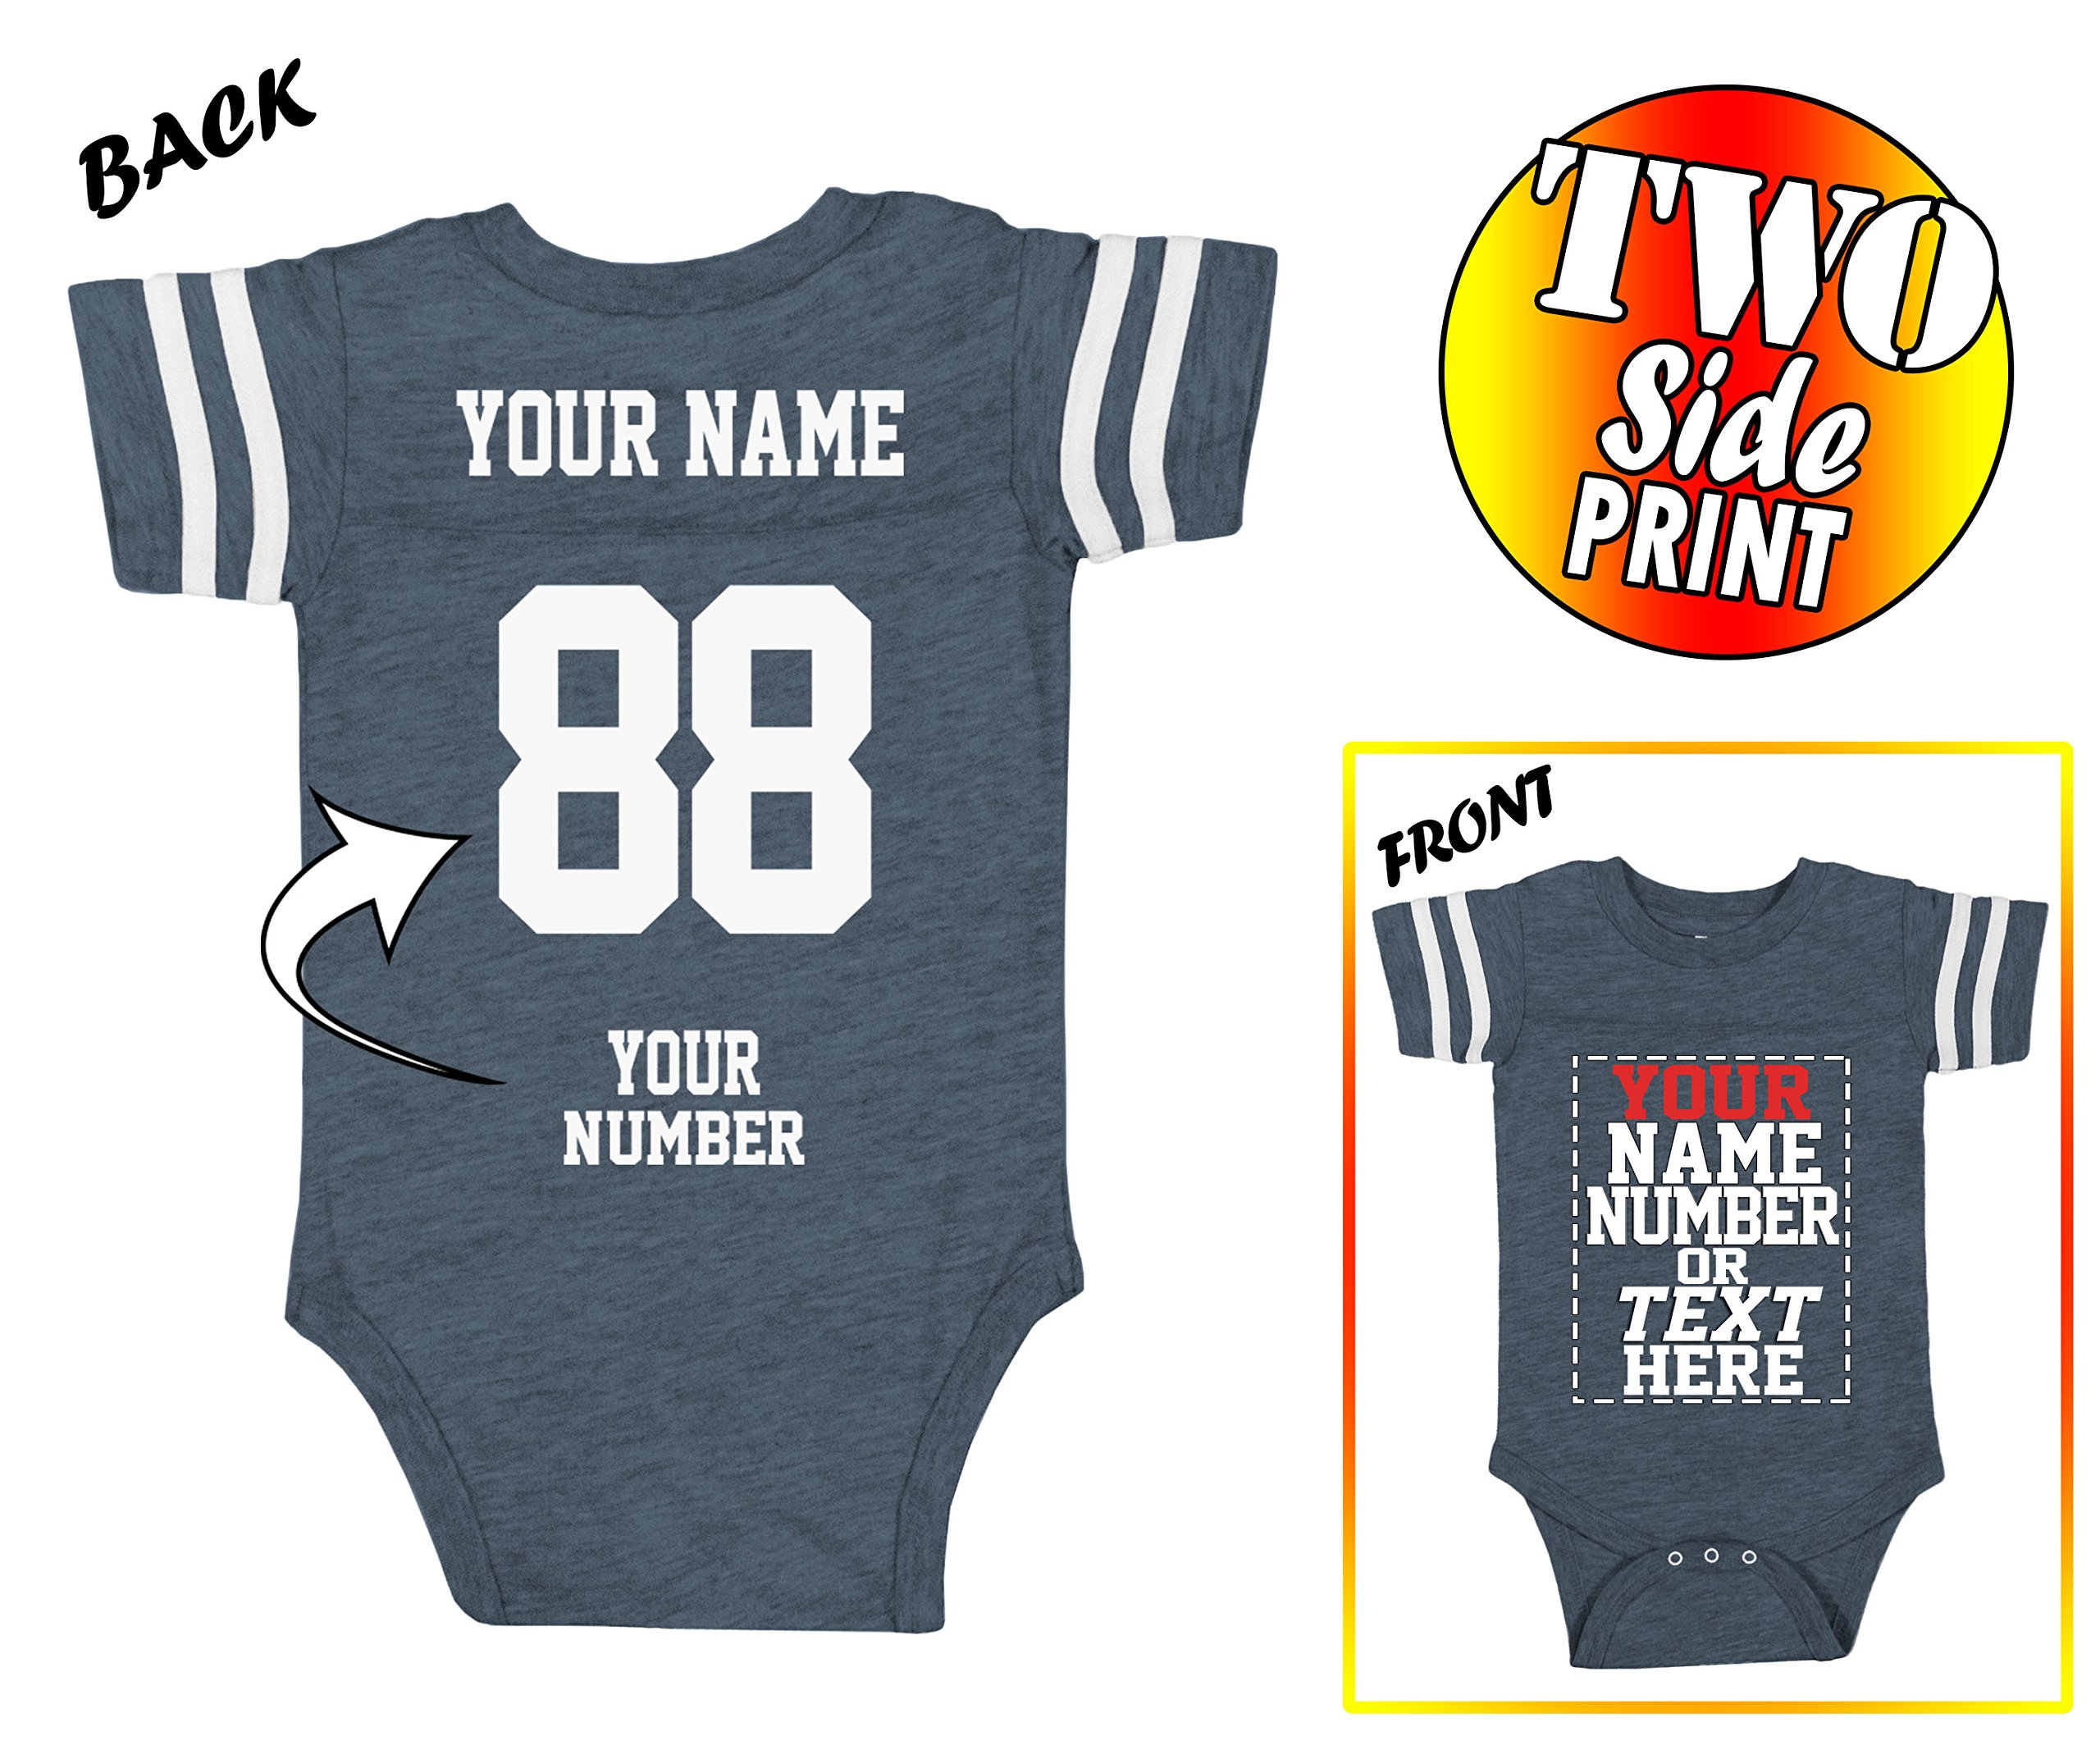 38795c9c6 Galleon - Custom Jerseys For Babies - Make Your OWN Jersey Onesie - Personalized  Baby Onesies & Newborn Outfits